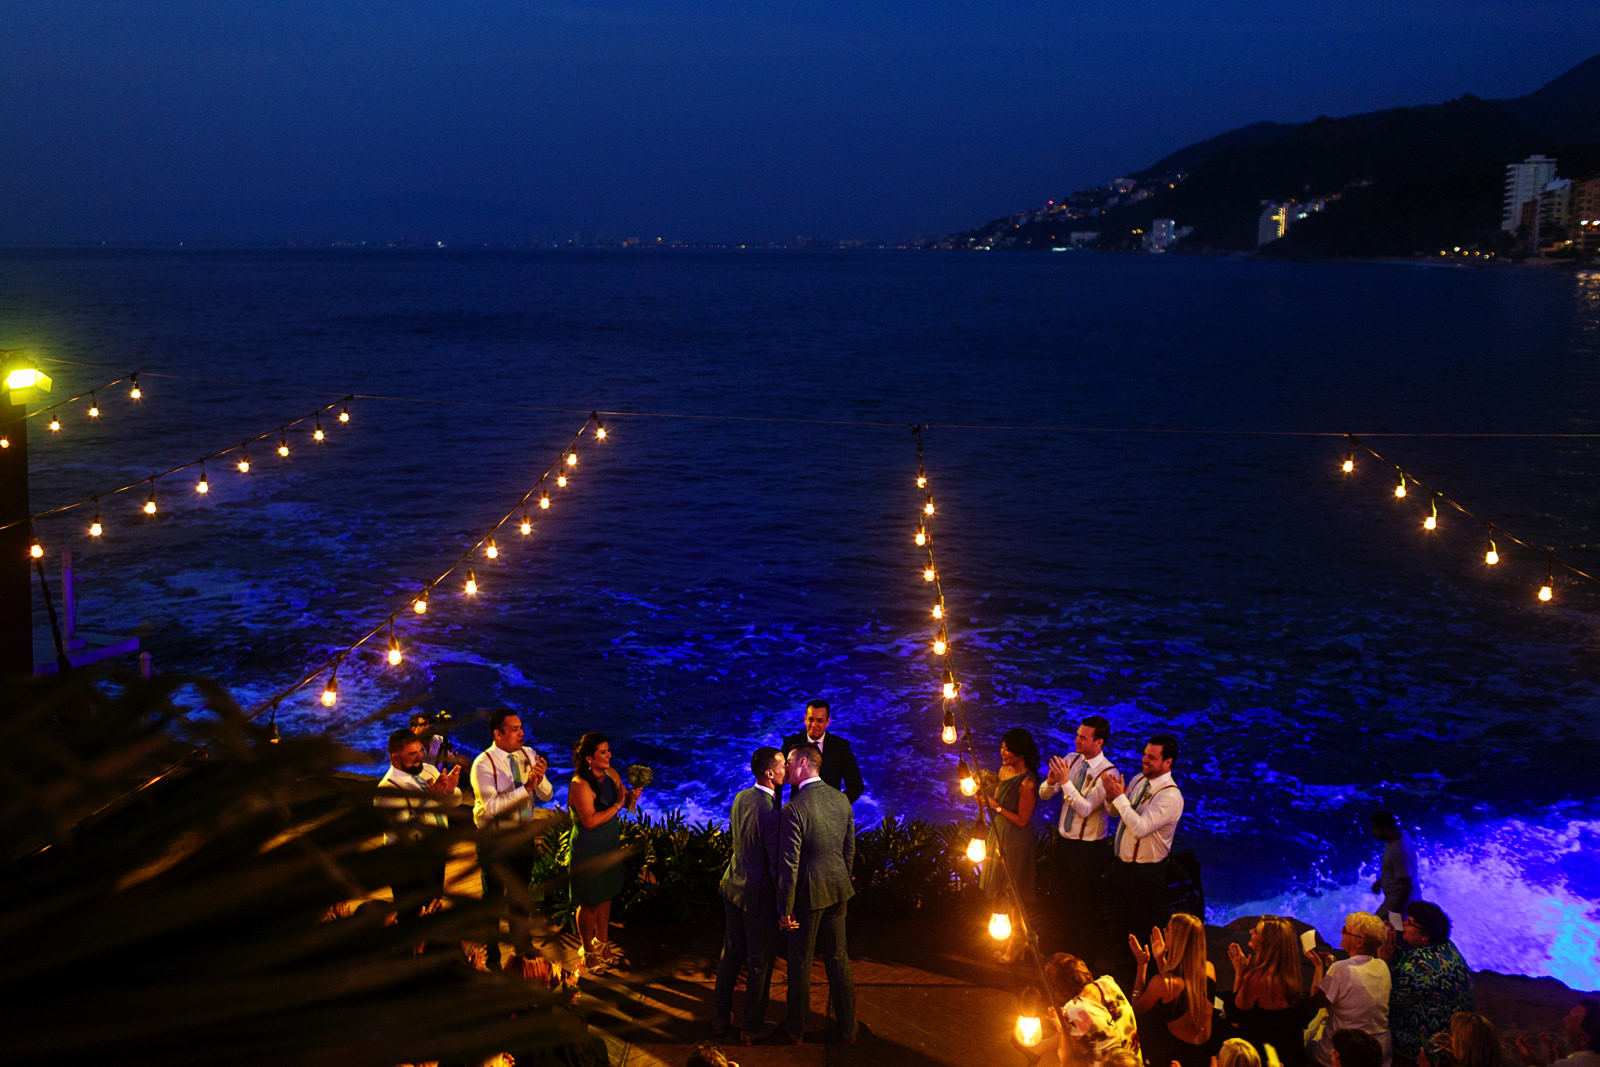 Grooms first kiss at the end of the gay wedding ceremony with a view of the ocean and mountains during the sunset